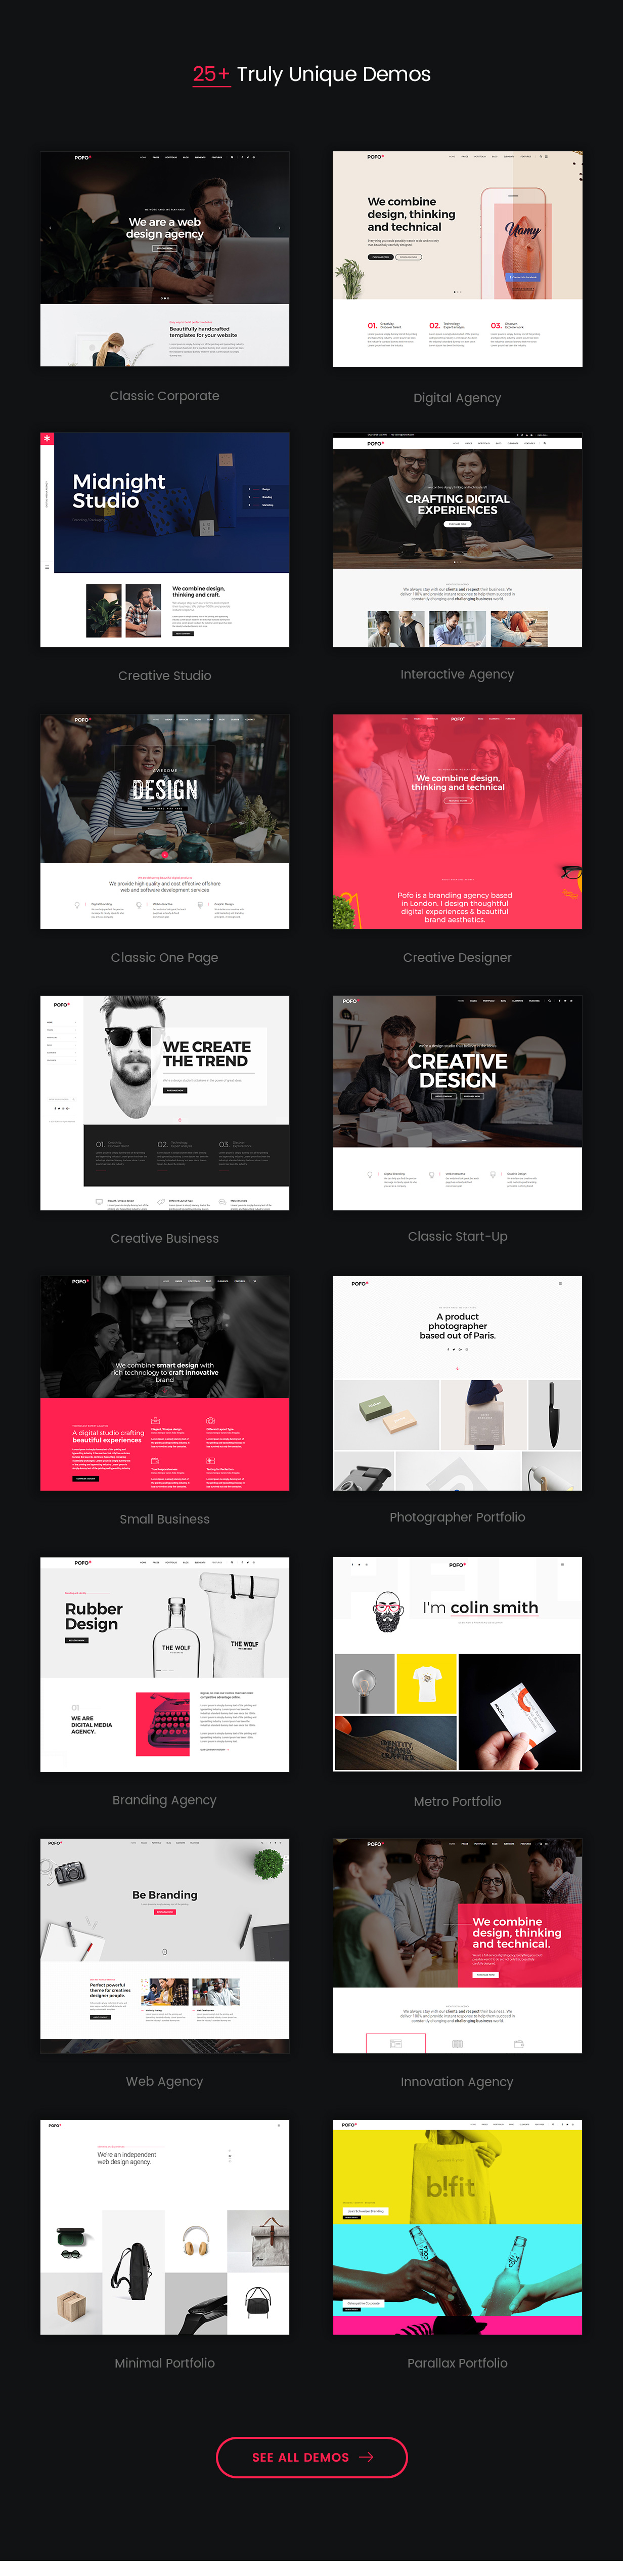 Pofo - Creative Portfolio and Blog WordPress Theme - 8